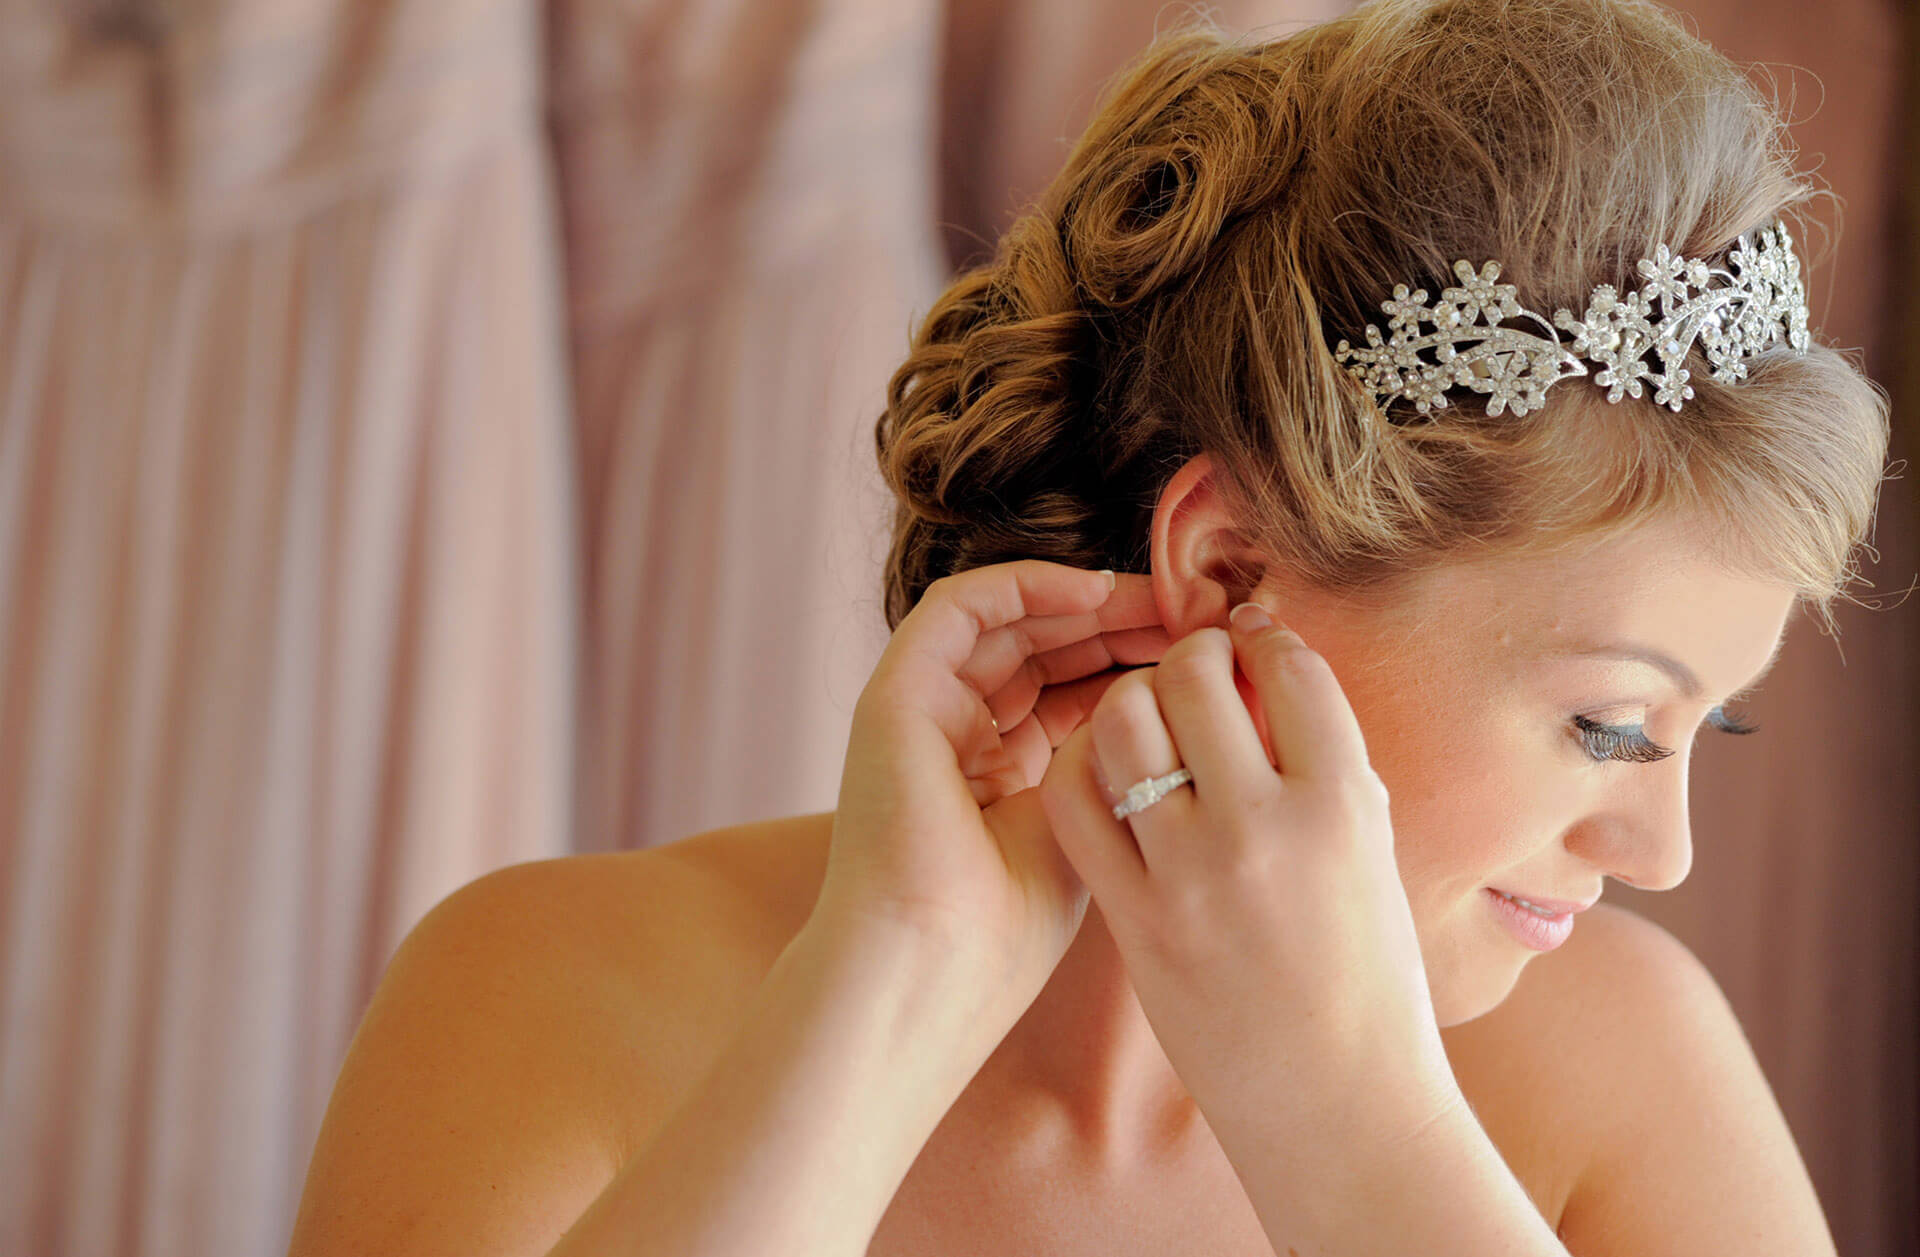 A bride fiddles with her earring as she gets ready at a hotel before her wedding in the Metro Detroit area.